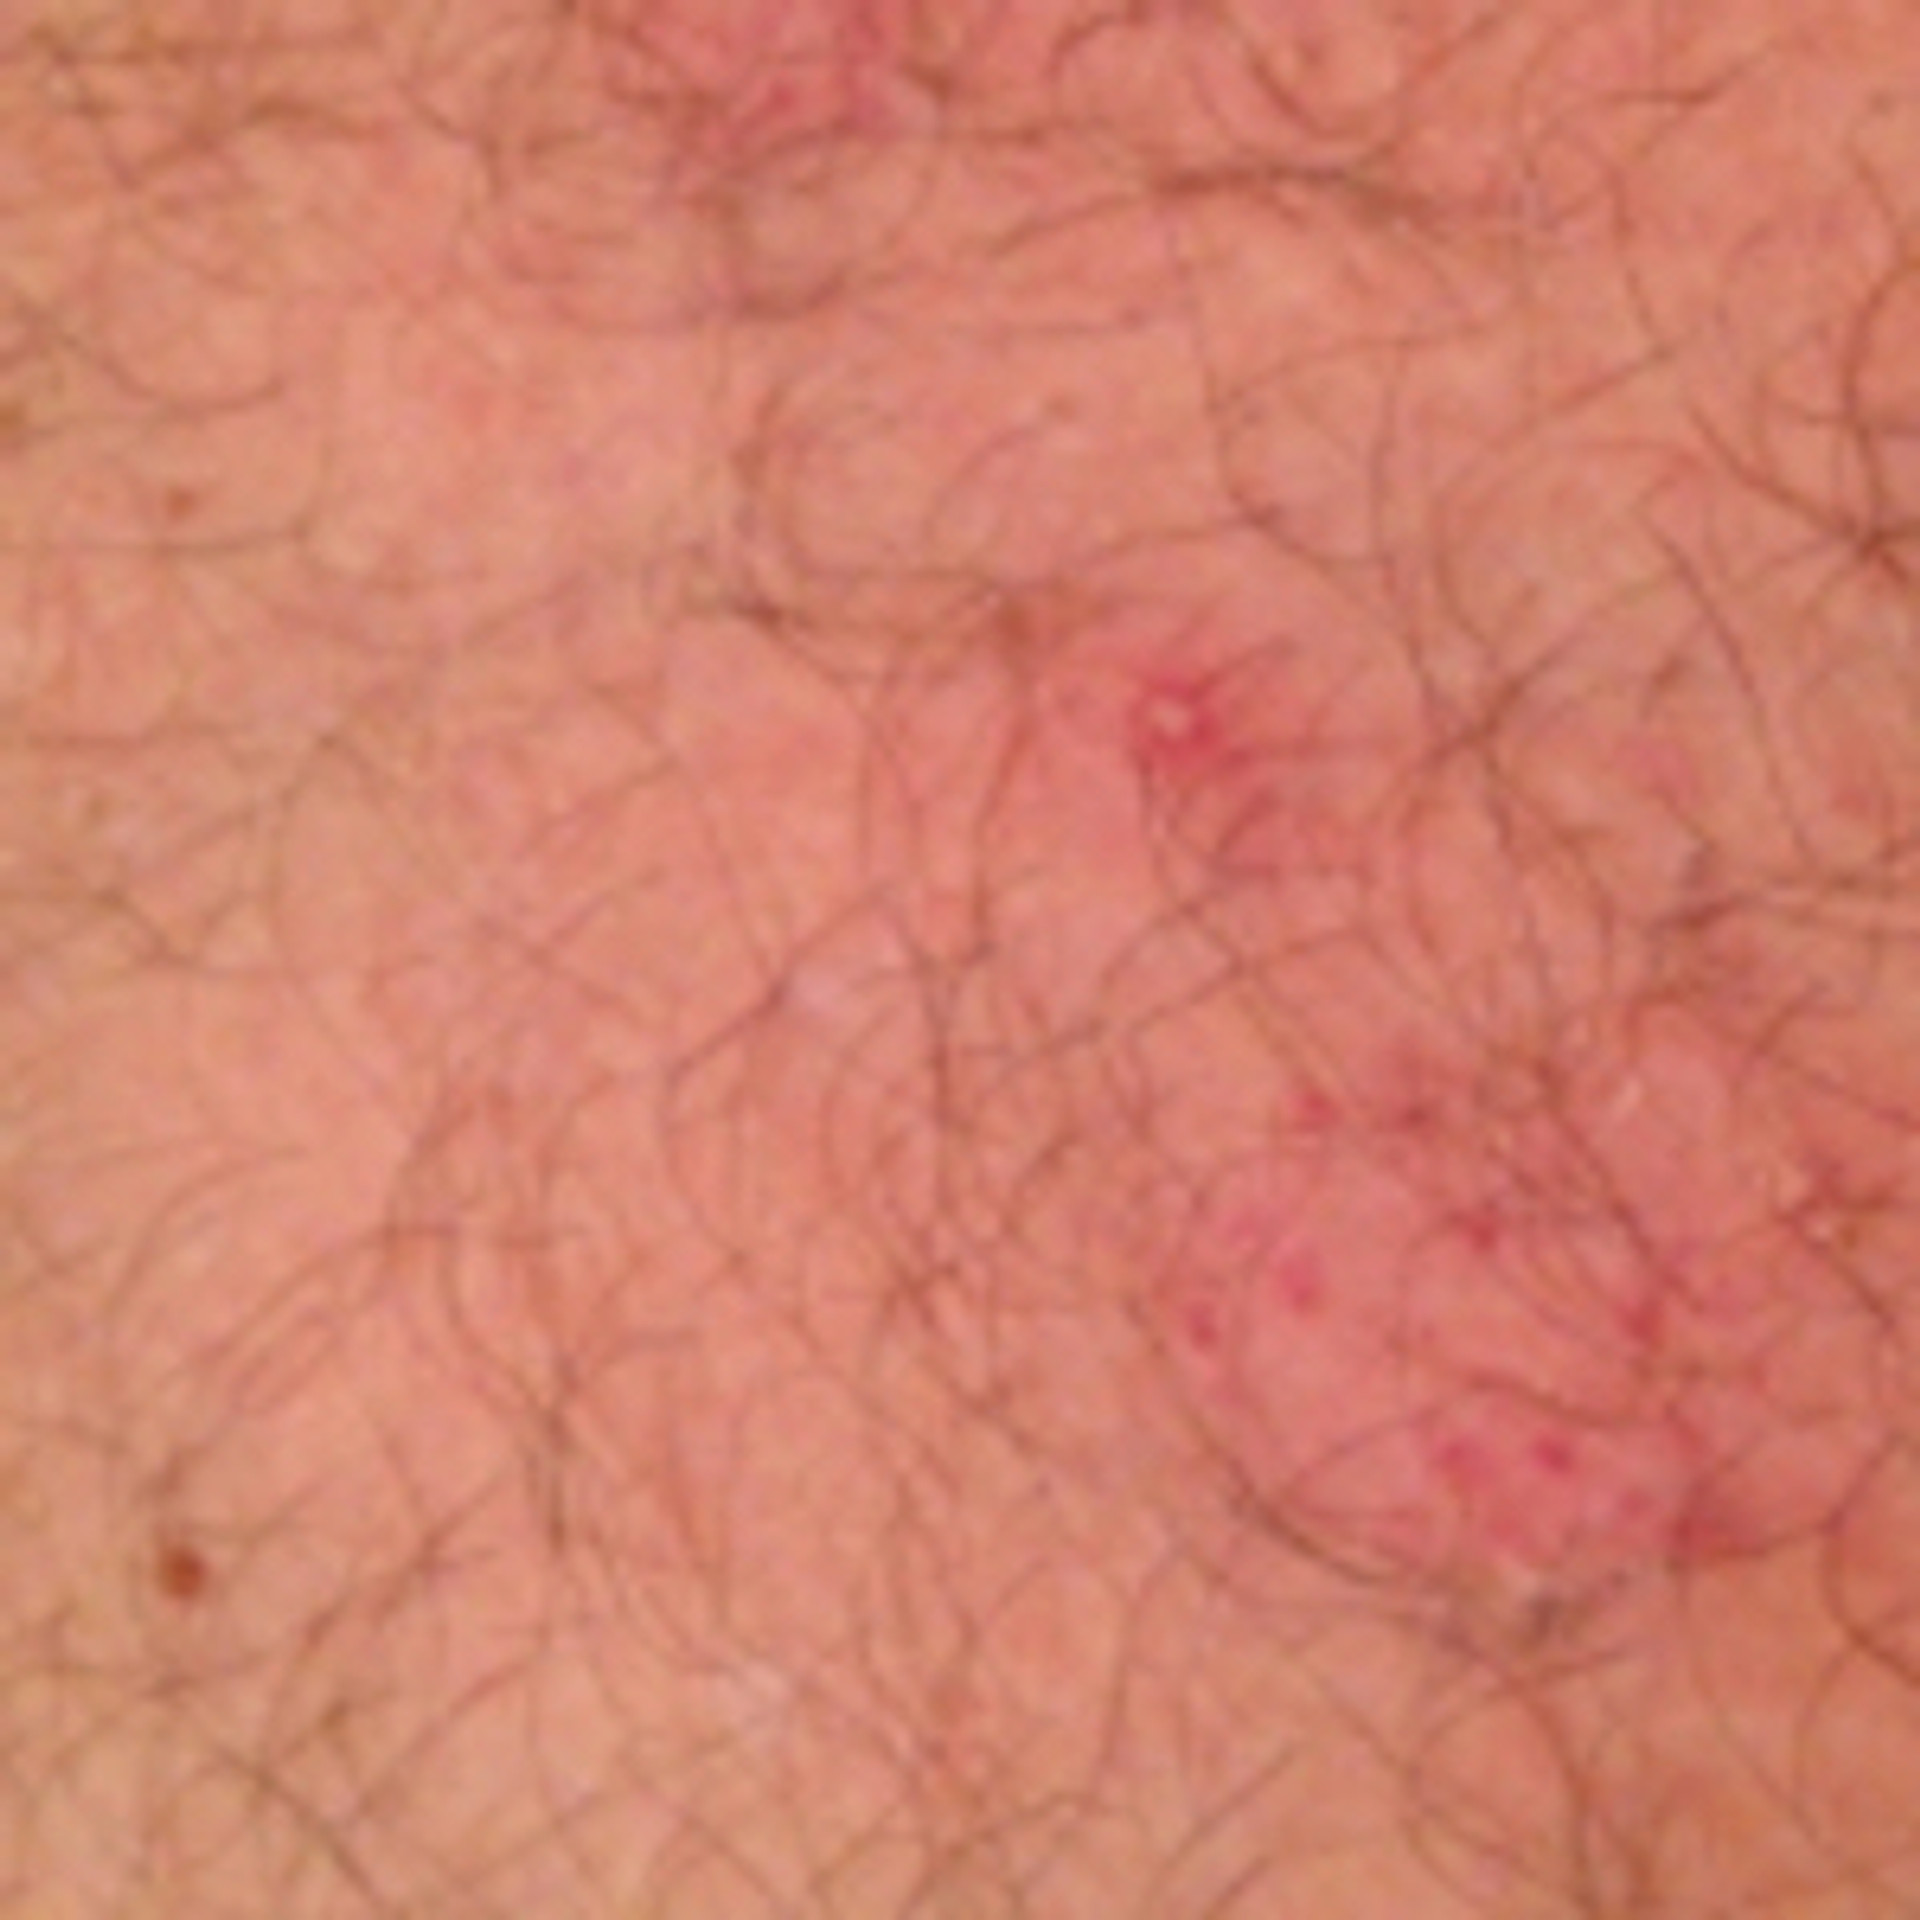 Photo of treatment for molluscum contagiosum near penis